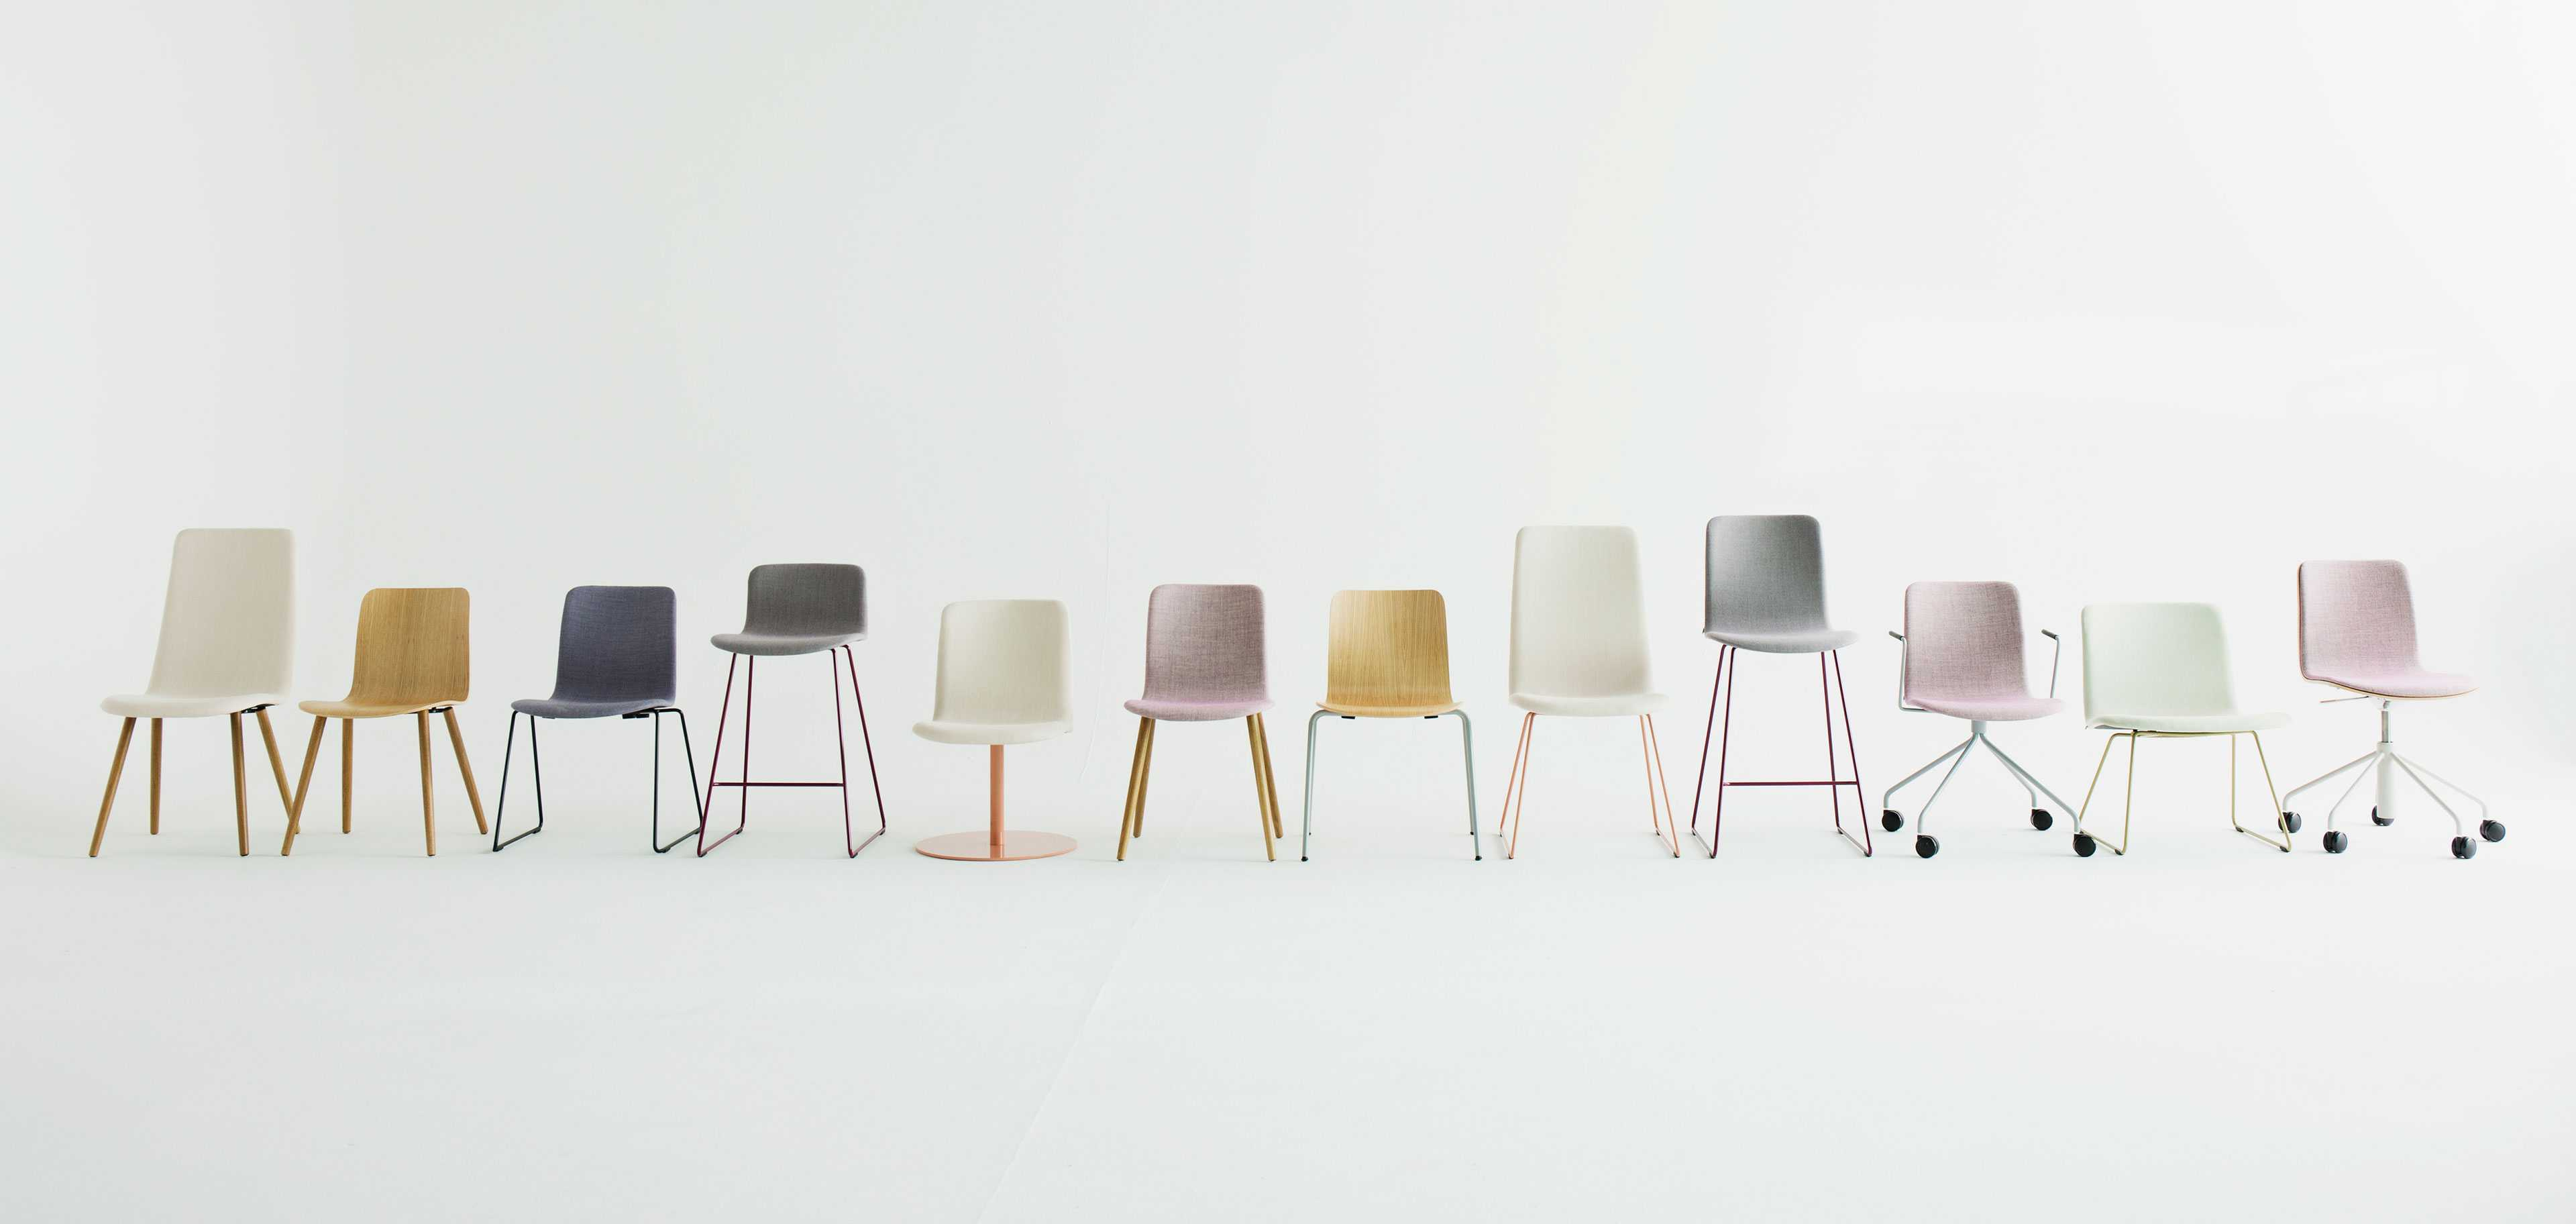 Sola chairs by Martela